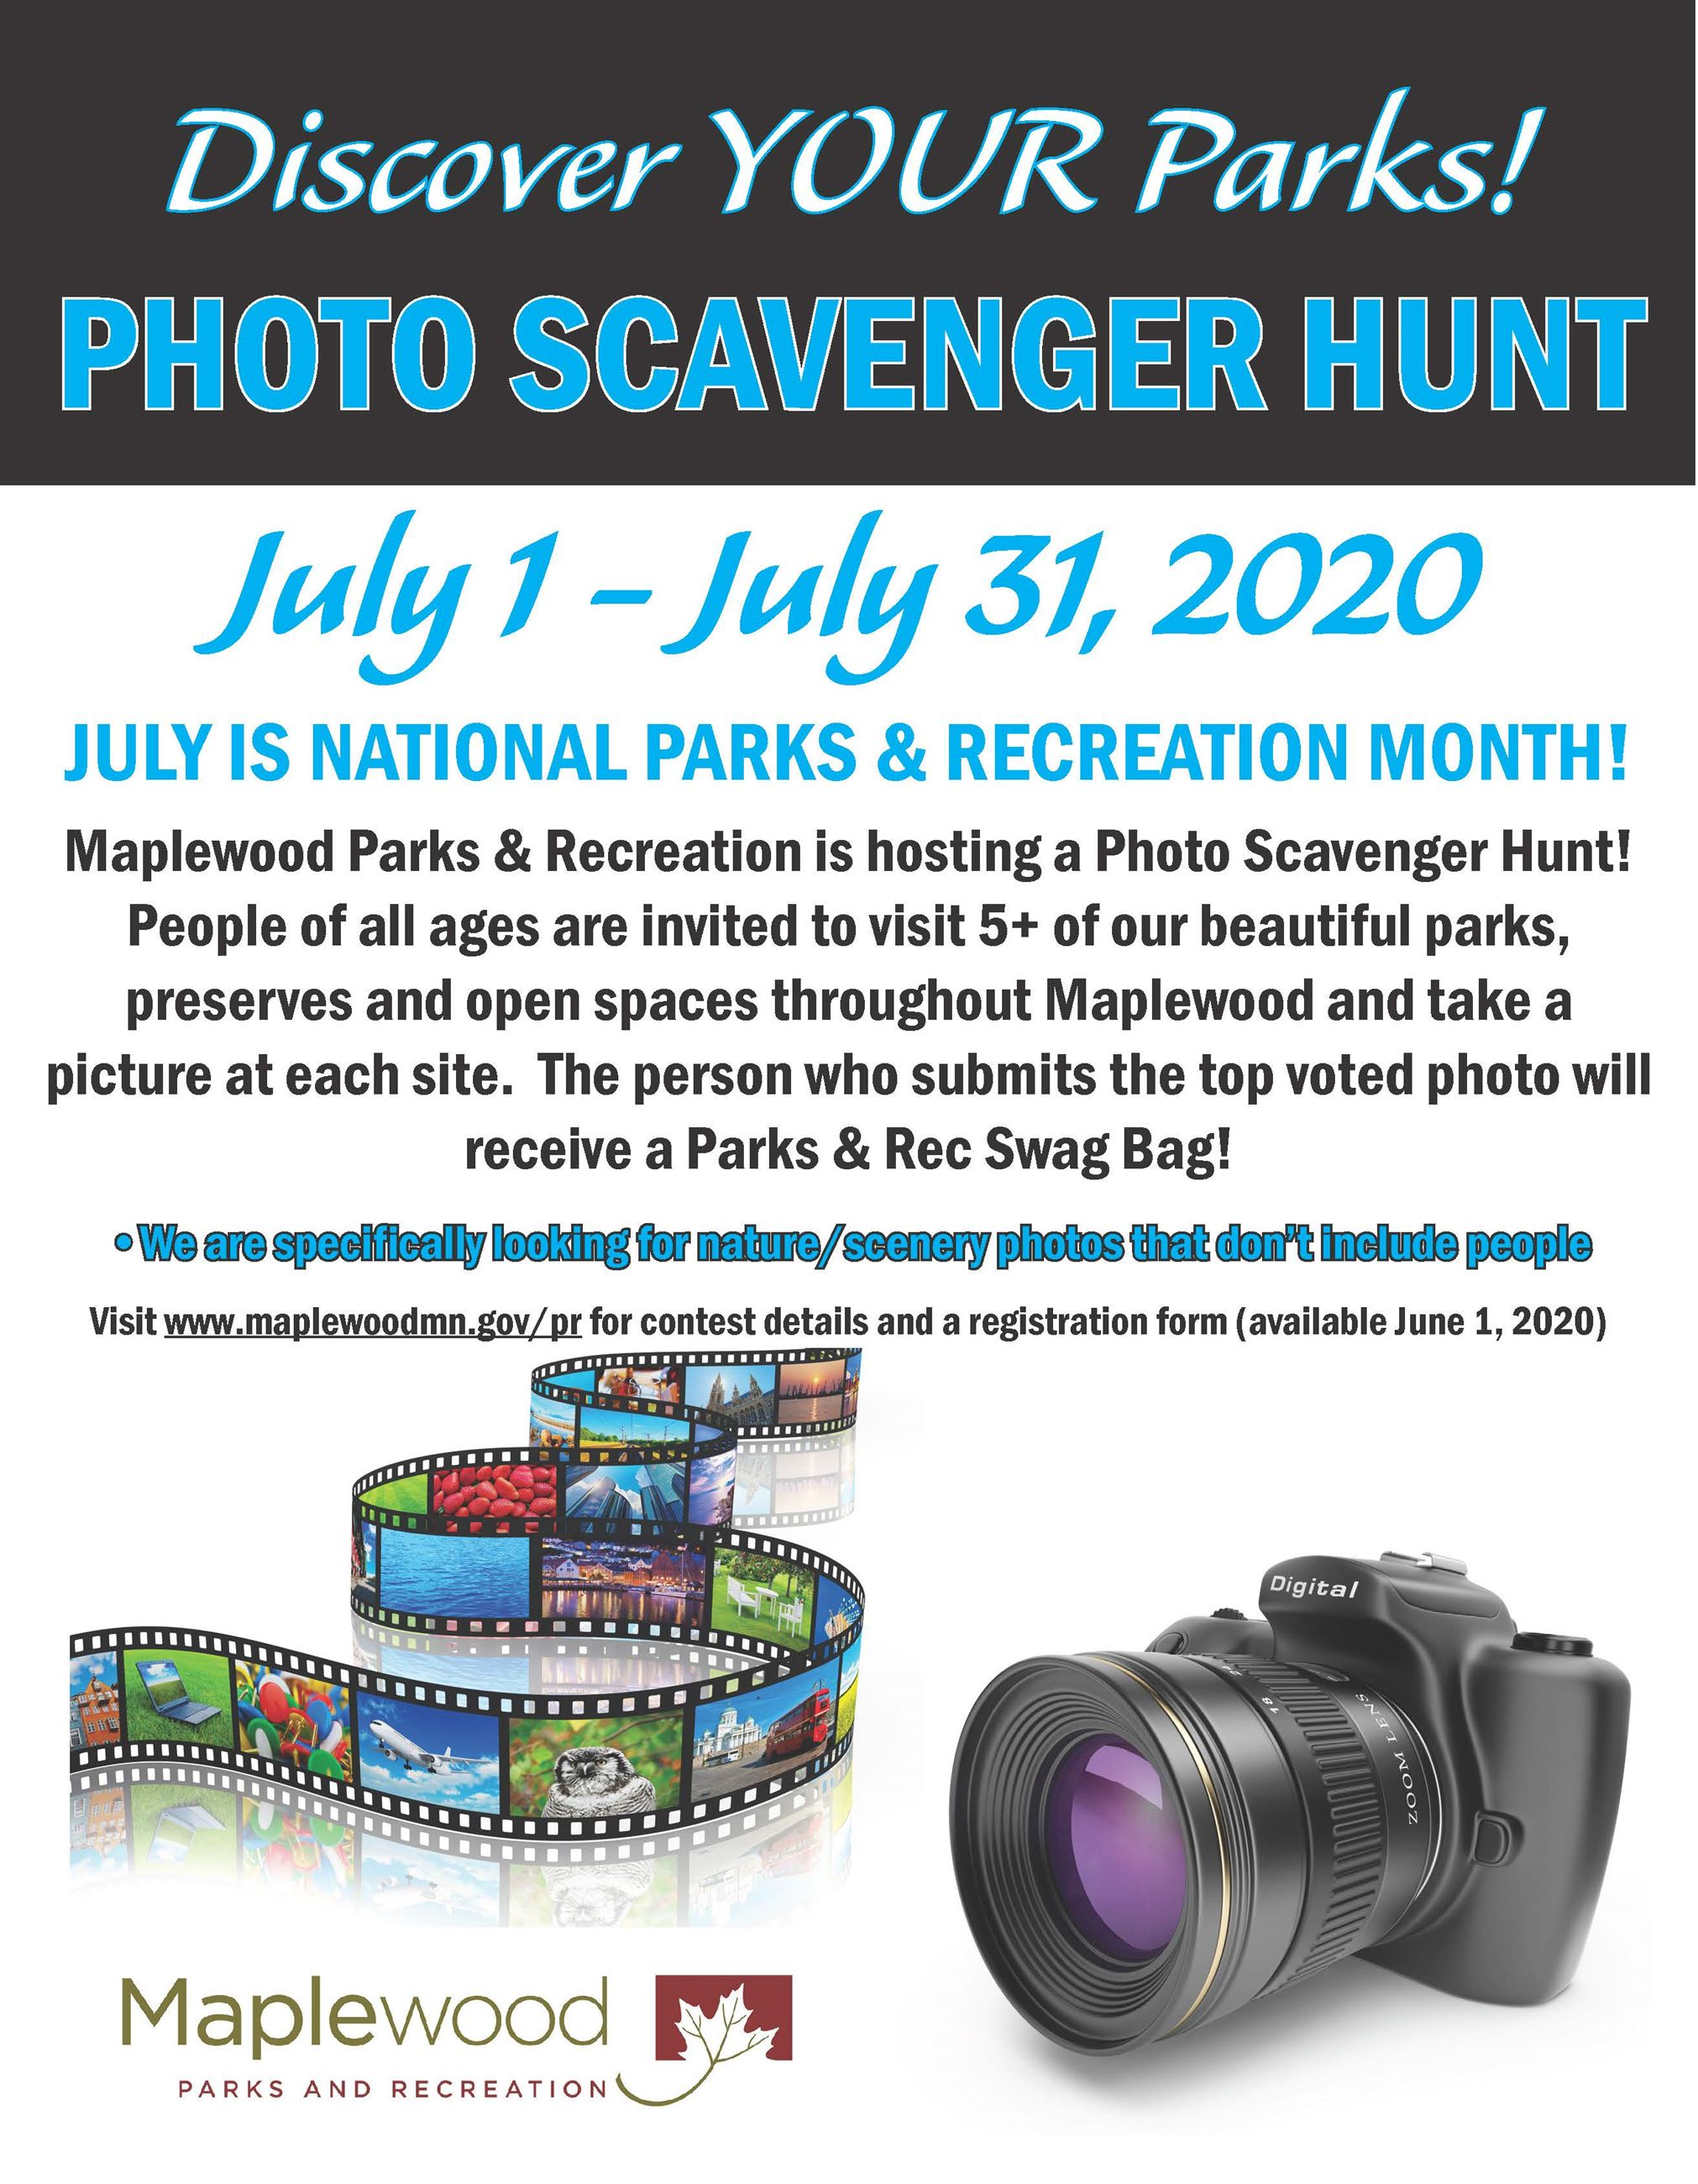 Photo Scavenger Hunt take pictures at 5 different parks winner has their photo featured